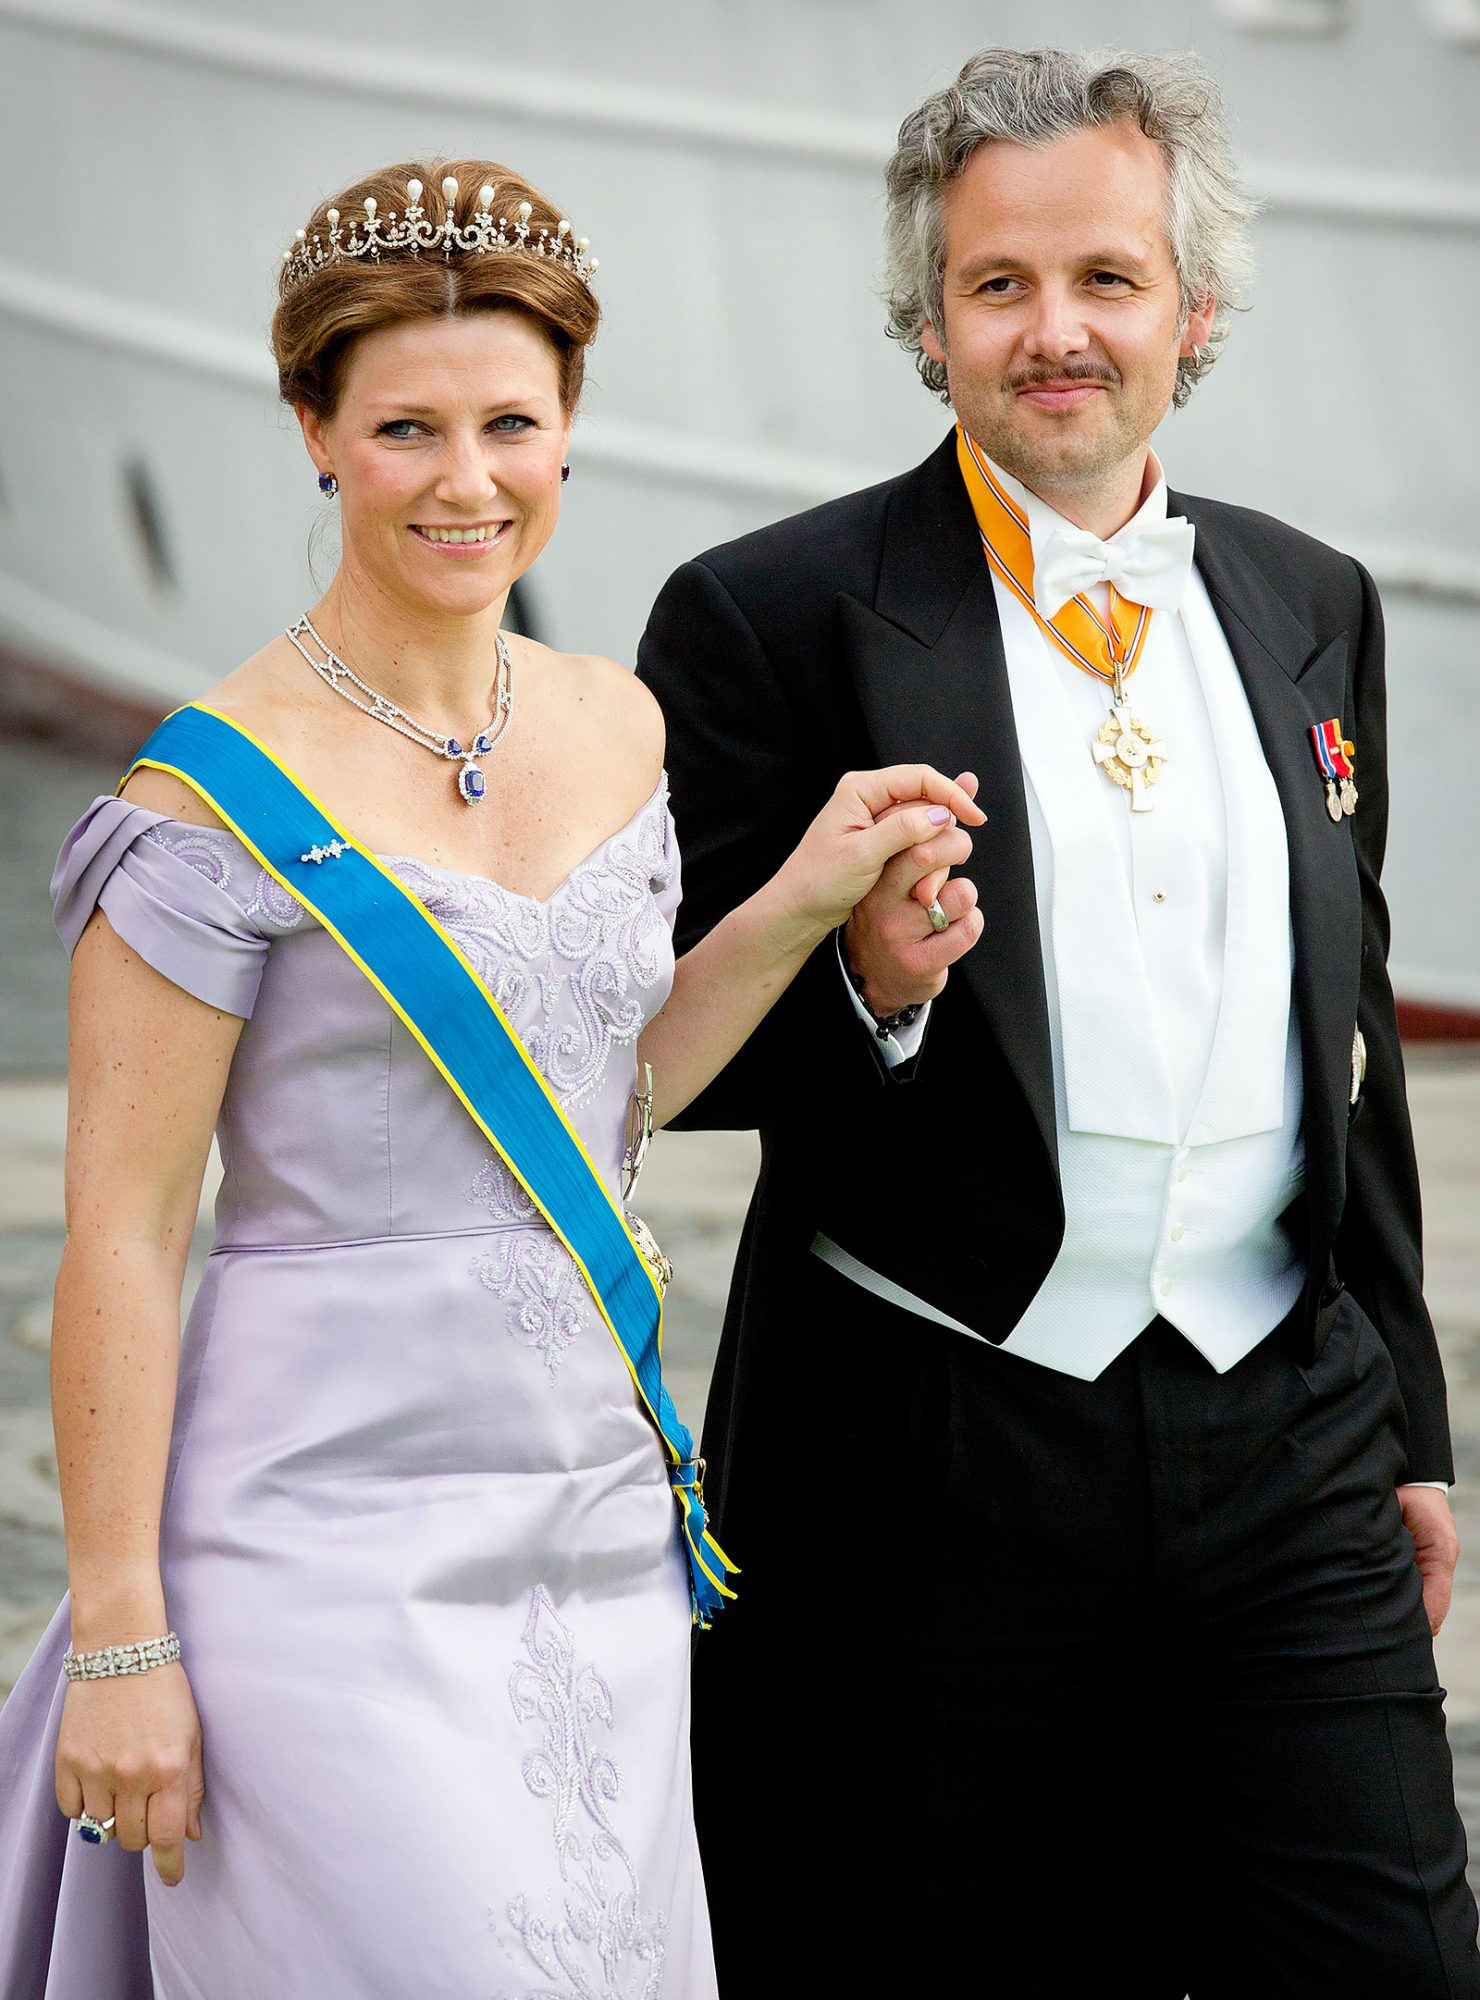 Swedish Royal Wedding - Evert Taubes Terrass